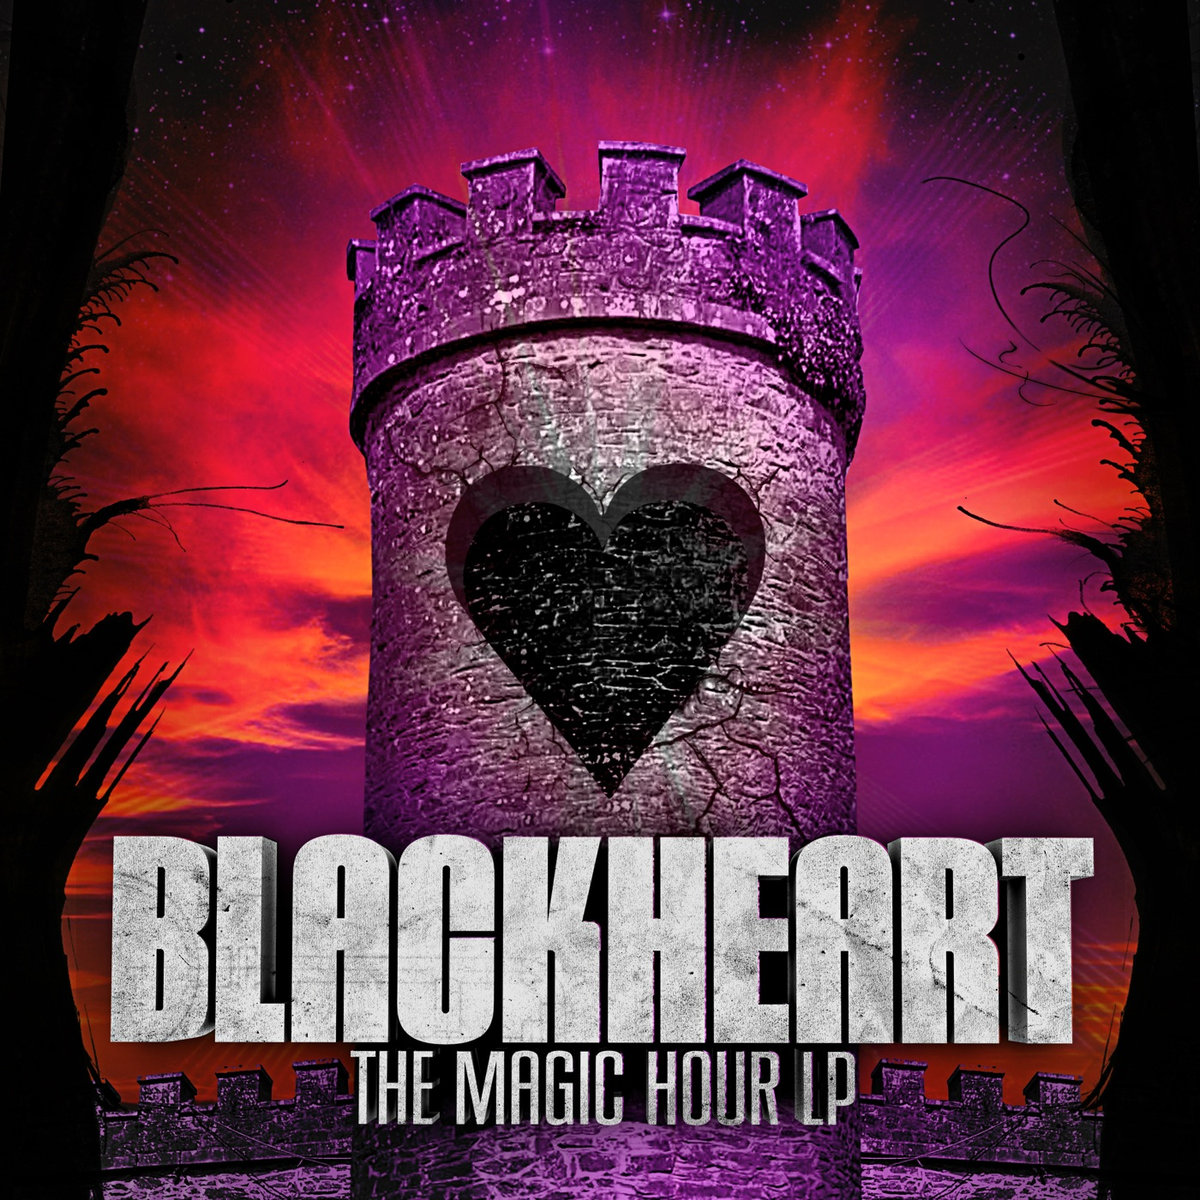 Blackheart & Bukkha feat. Rastatronics - Digital Breath @ 'The Magic Hour' album (electronic, dubstep)